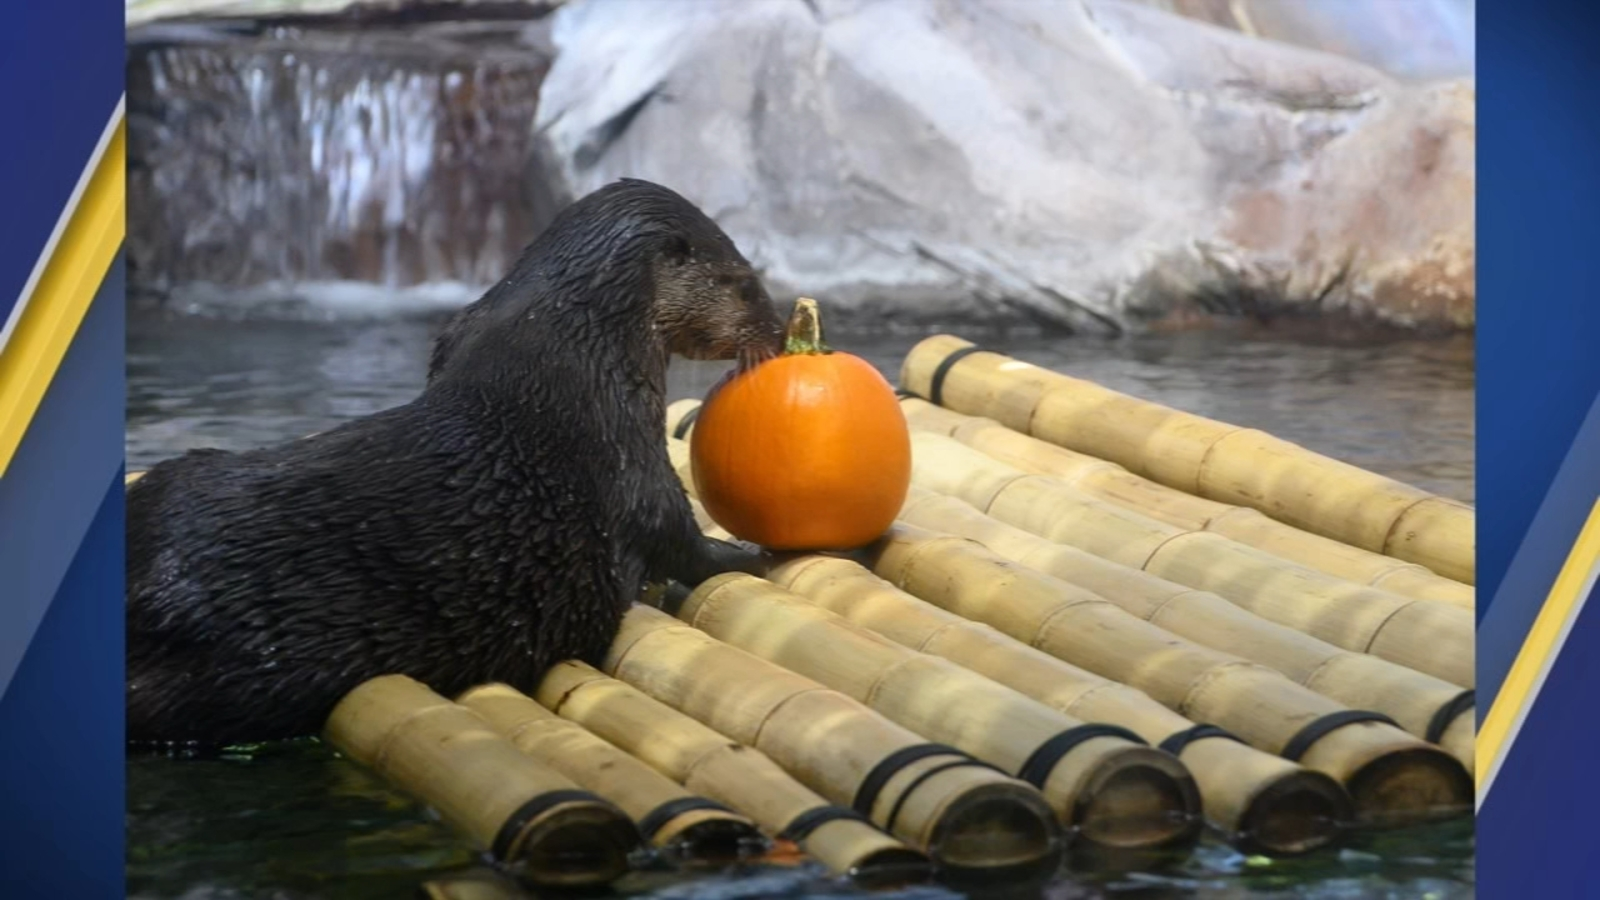 Halloween comes early at NC Aquarium in Pine Knoll Shores